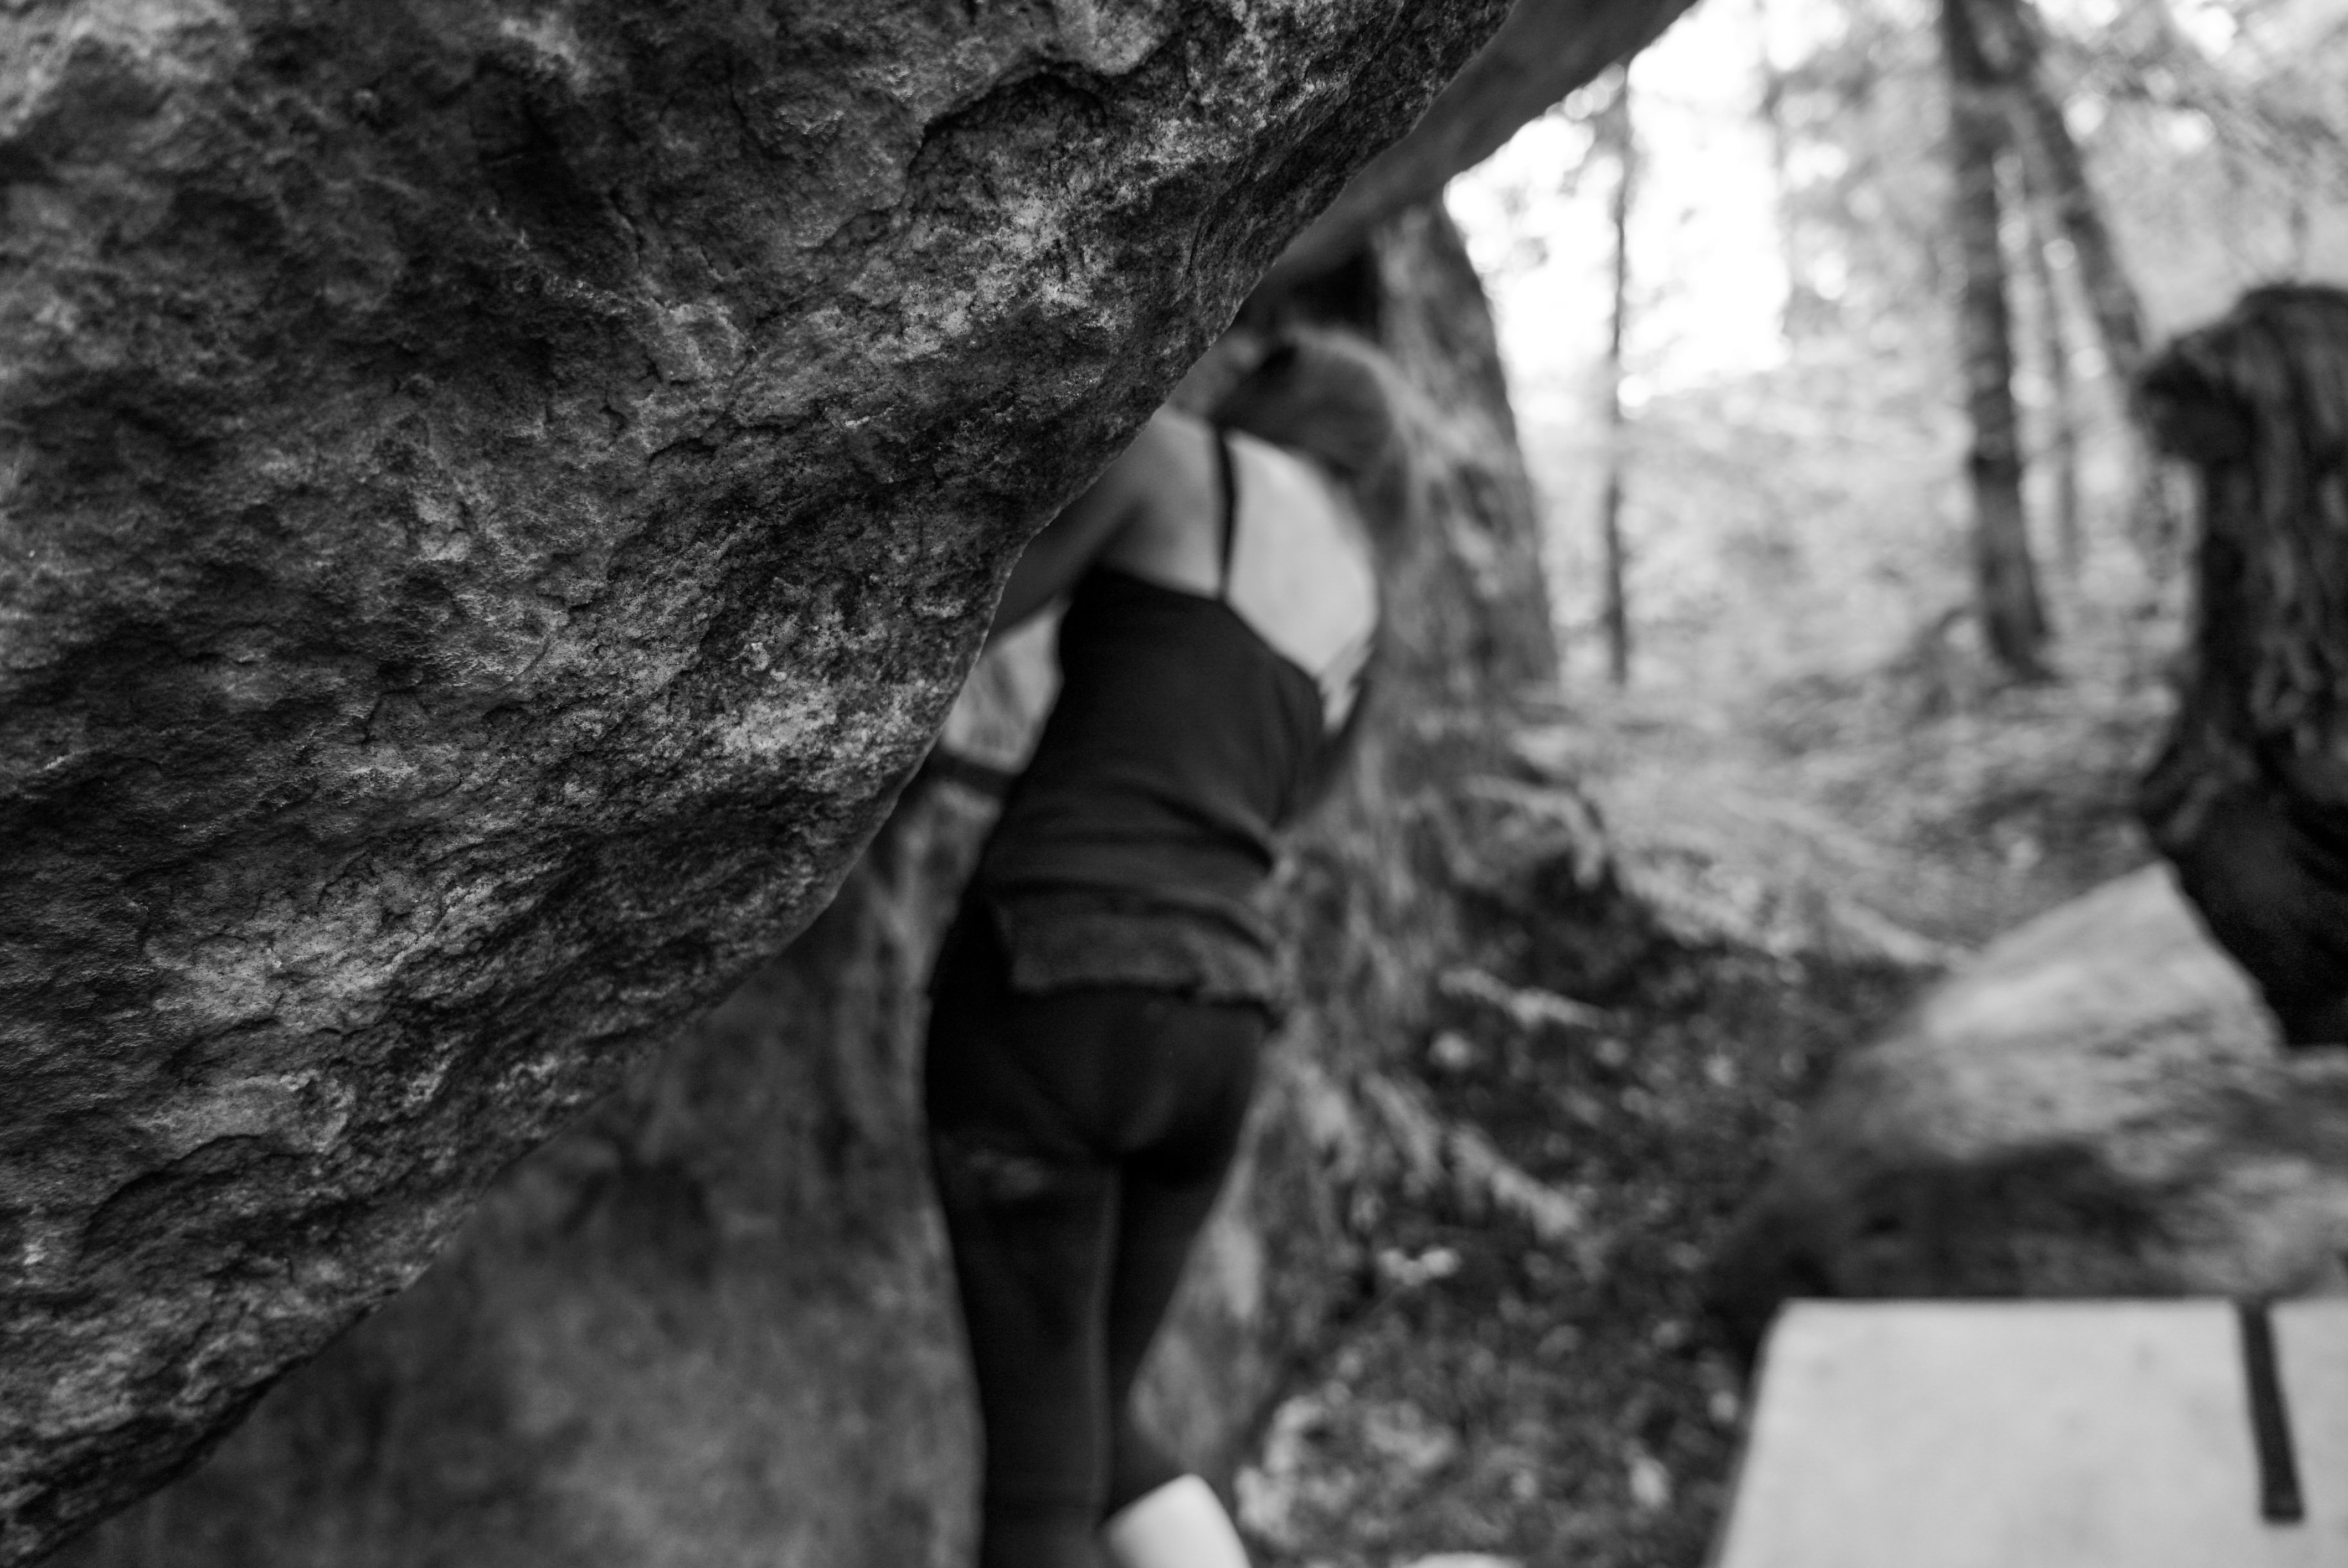 fontainbleau climbing 2016 mike brindley-10